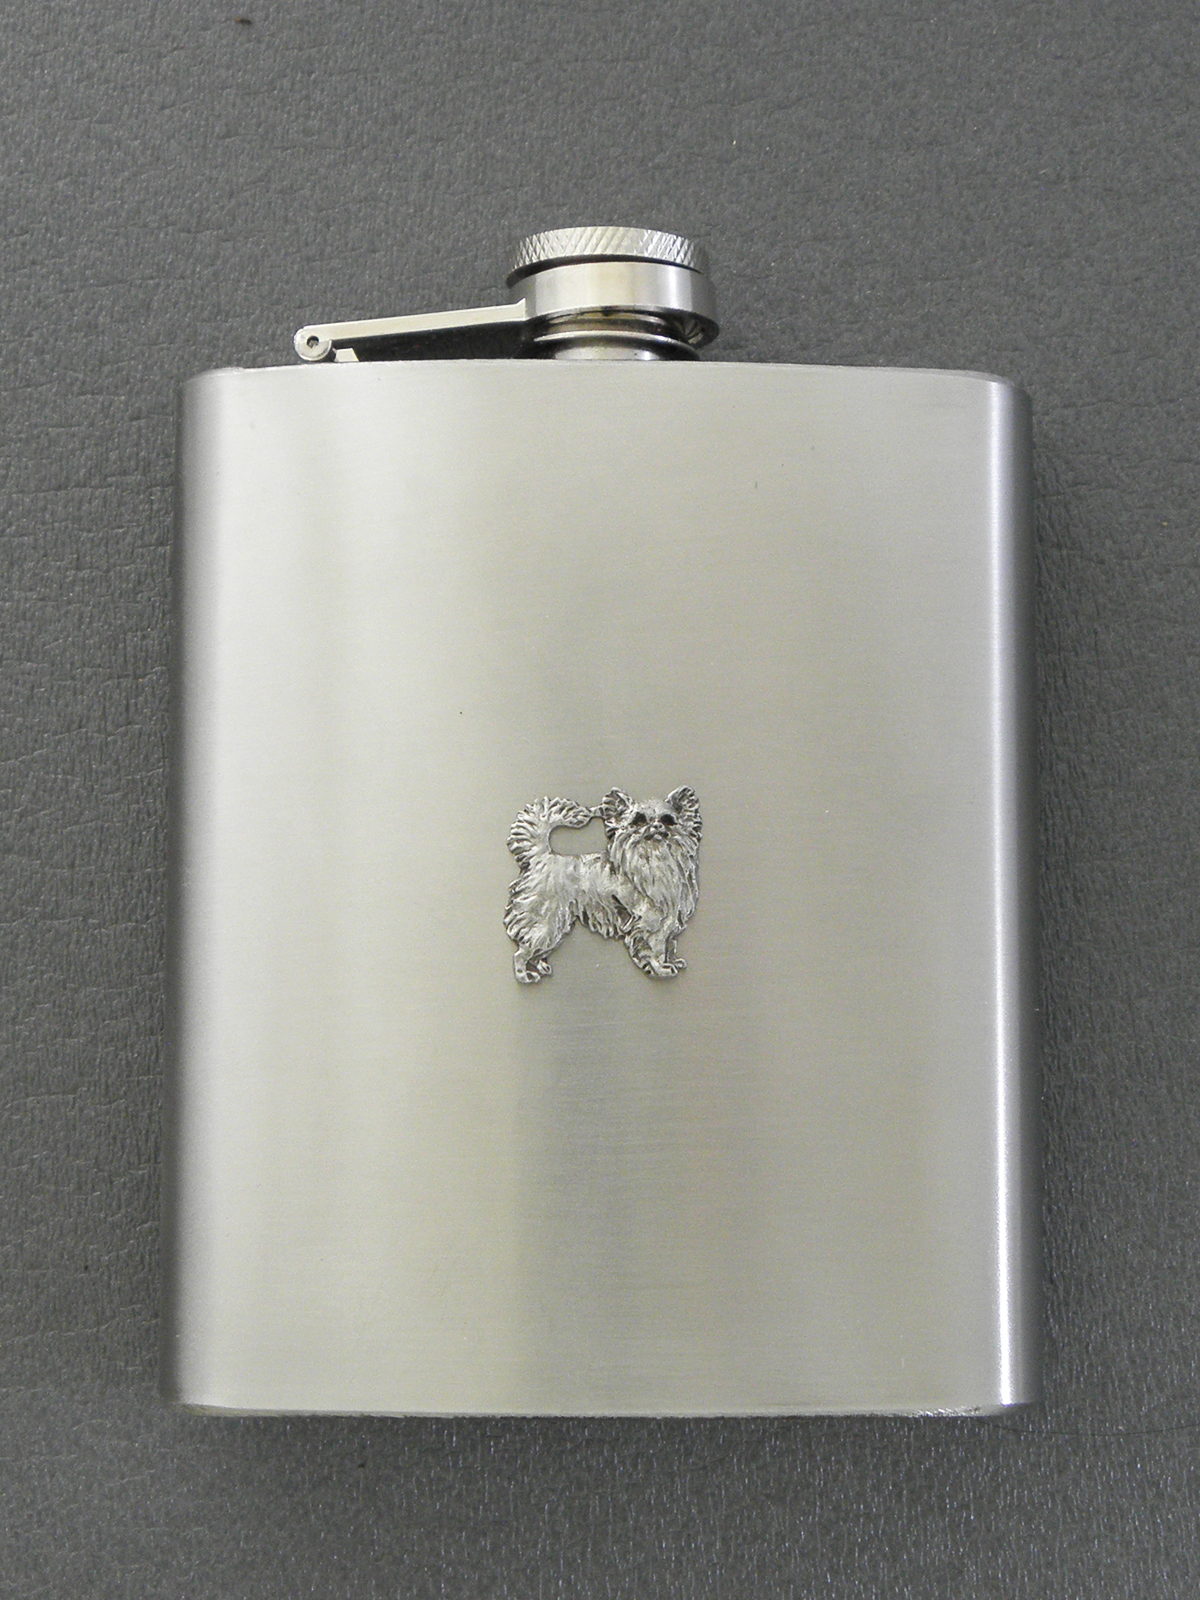 Chihuahua Longhaired - Hip Flask Figure